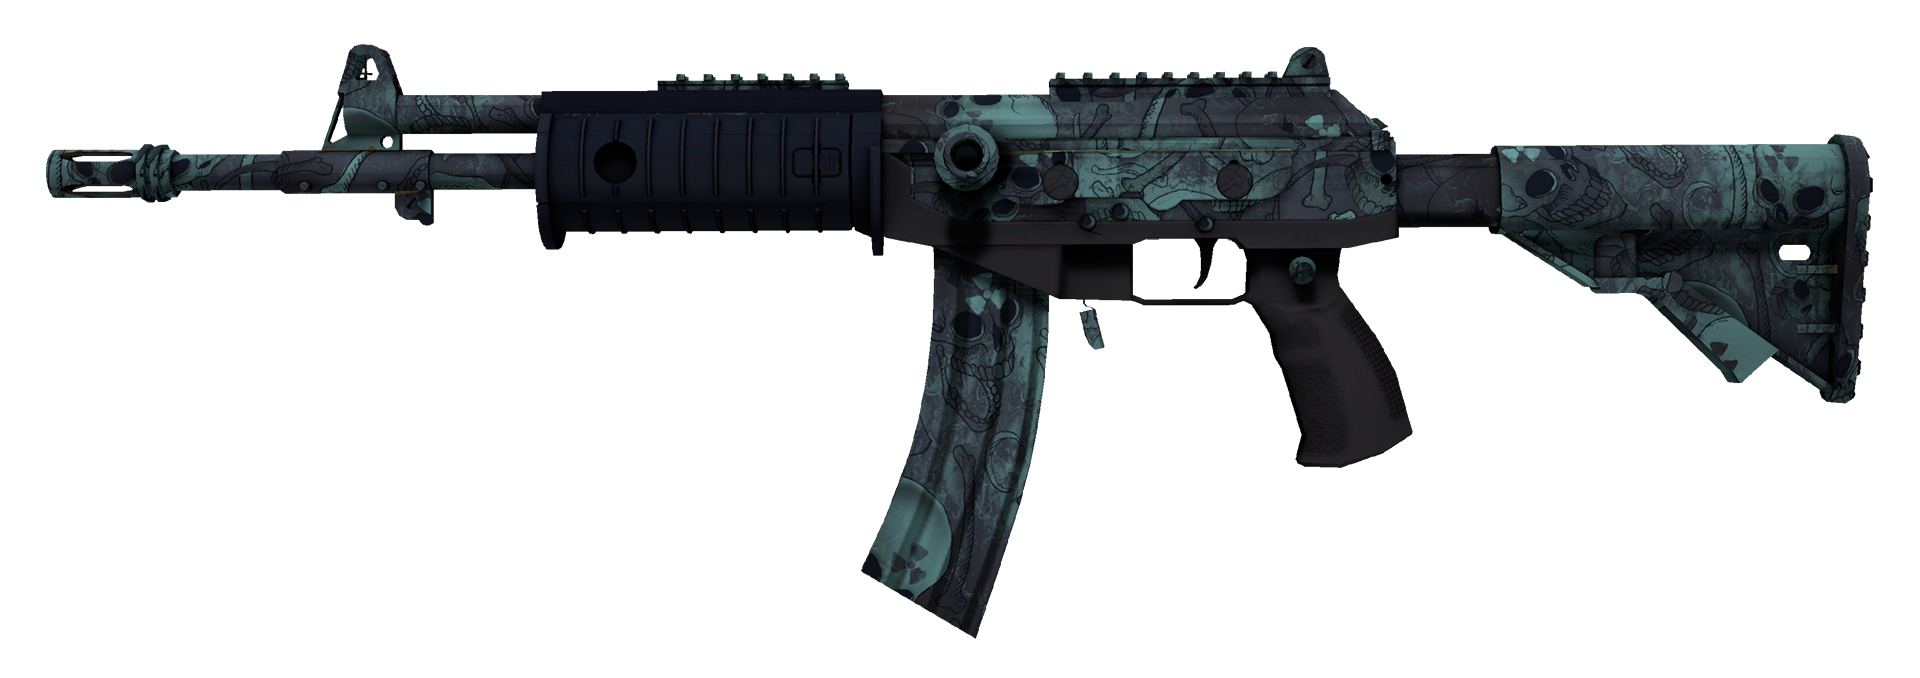 Galil AR Cold Fusion Large Rendering